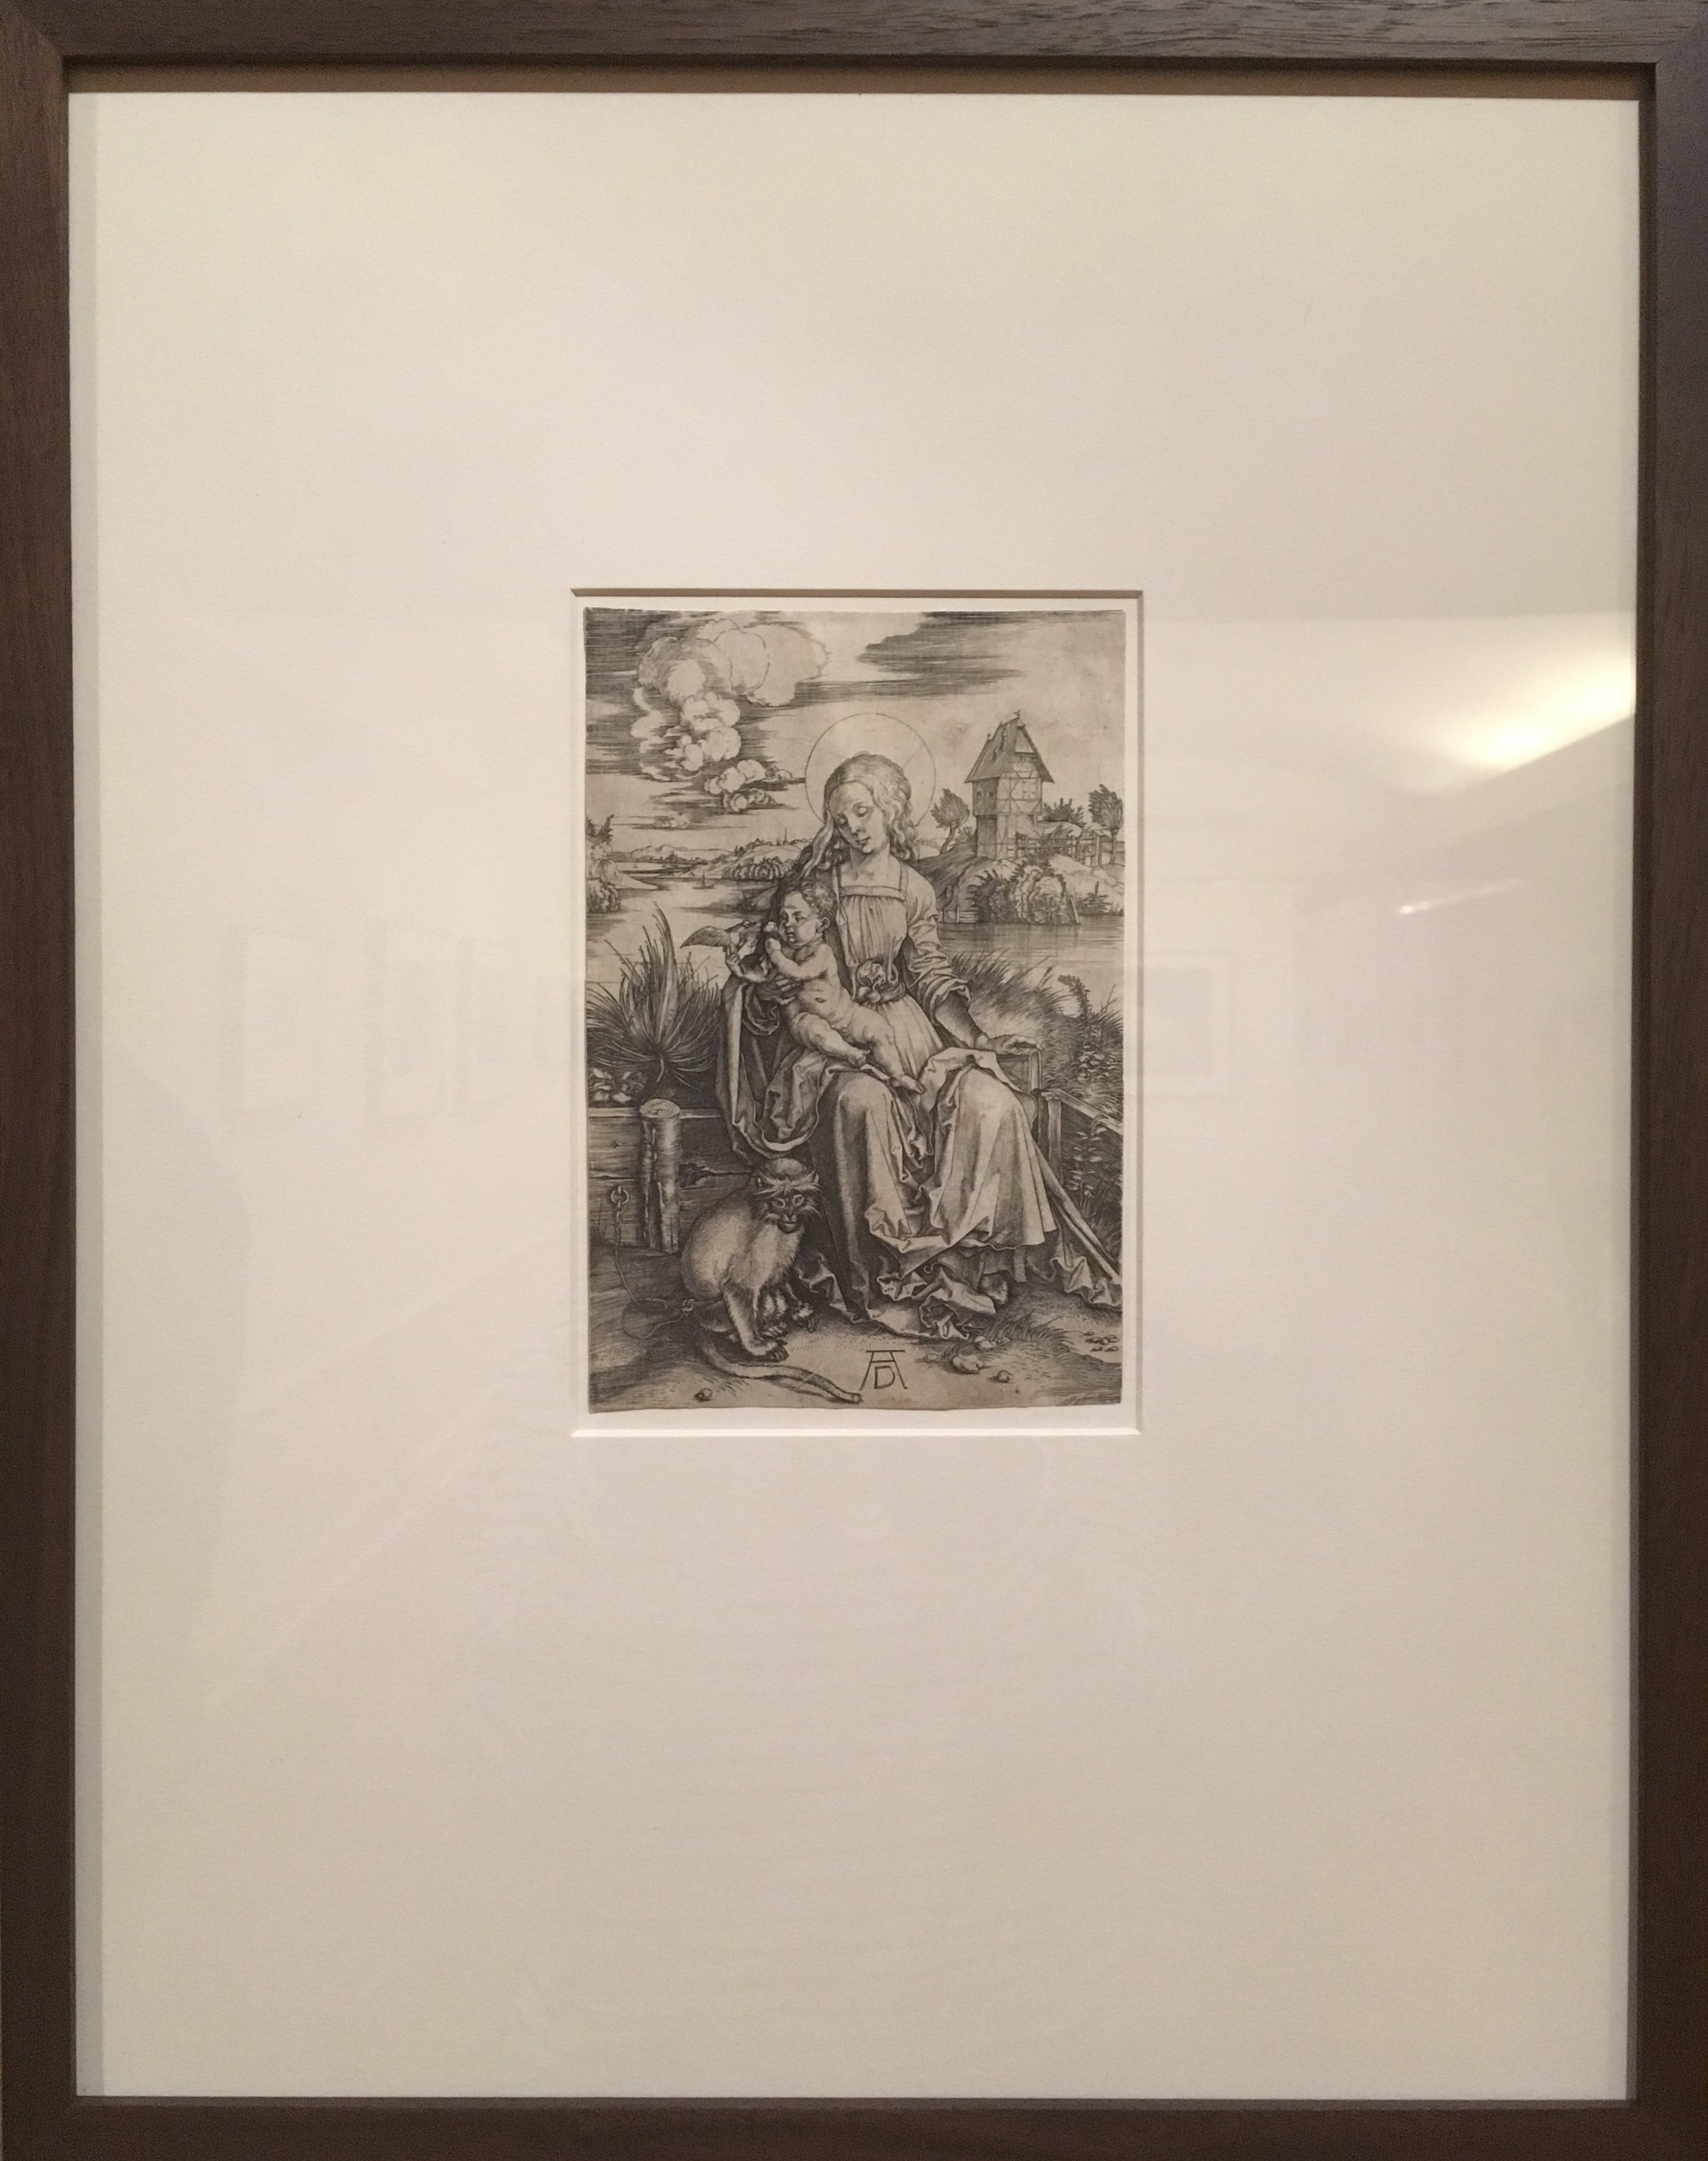 Albrecht Durer,   Virgin and Child with a Monkey  , ca. 1498, Engraving on cream laid paper